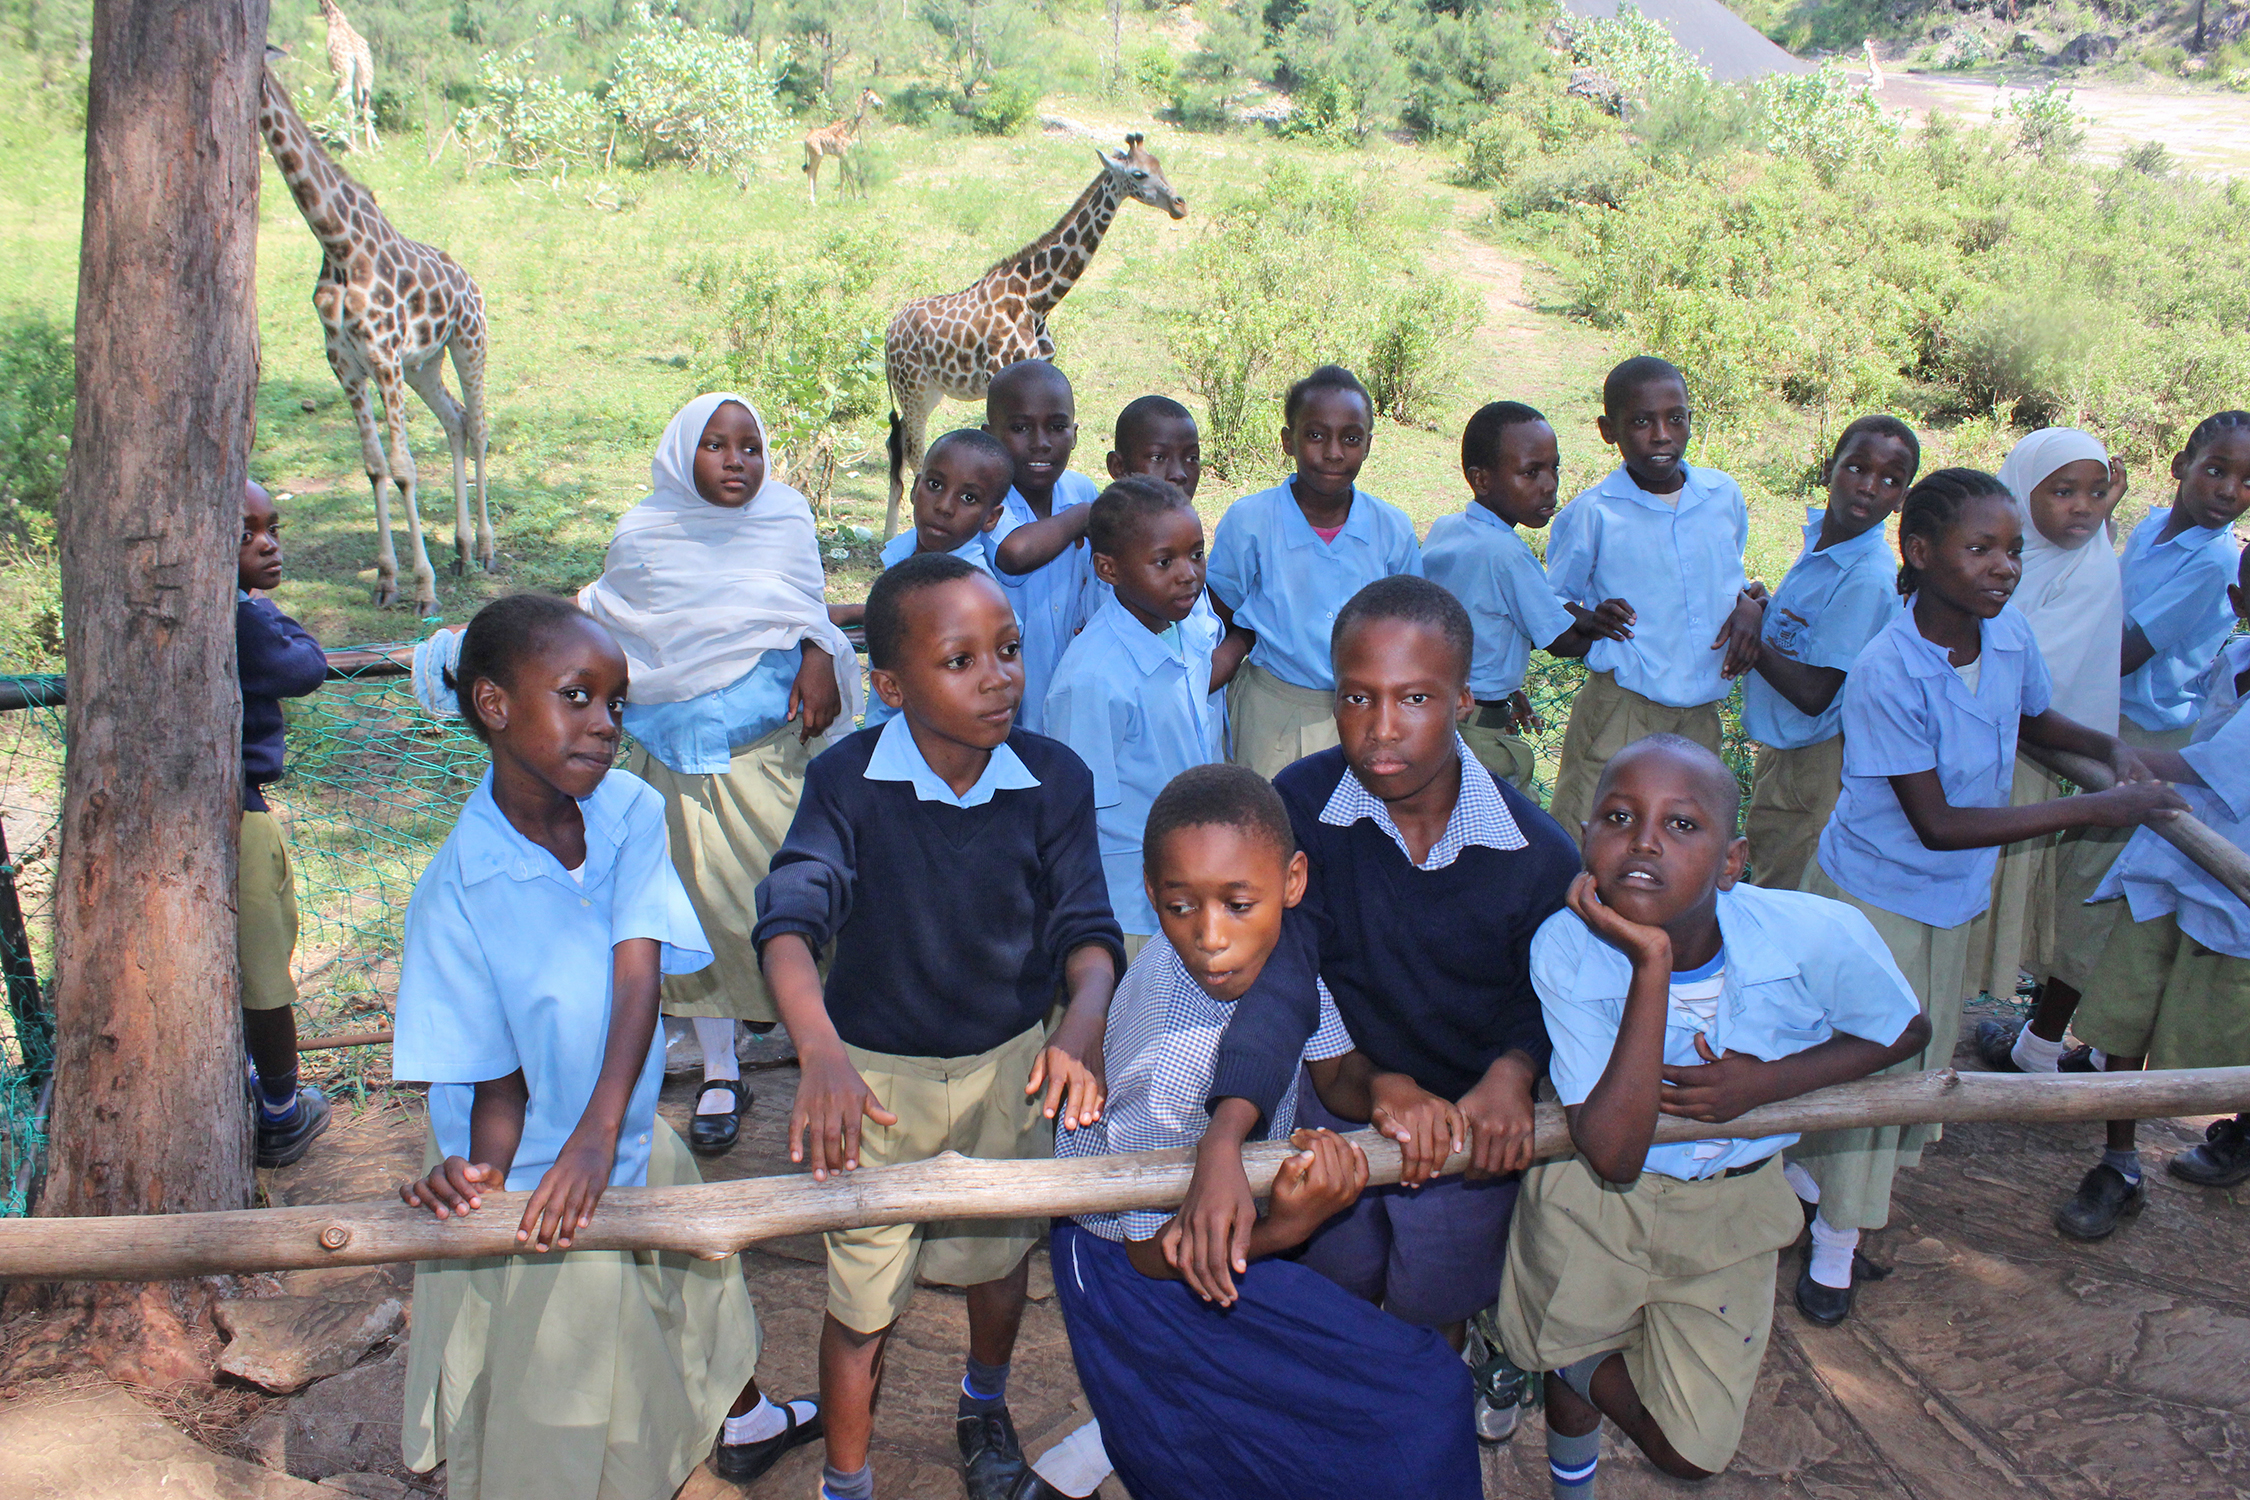 KIU students engage in an outdoor activity at a wild park. The program allows students to learn in settings ranging from the classroom to the beach to sports games. Photo courtesy of claude chained '18.